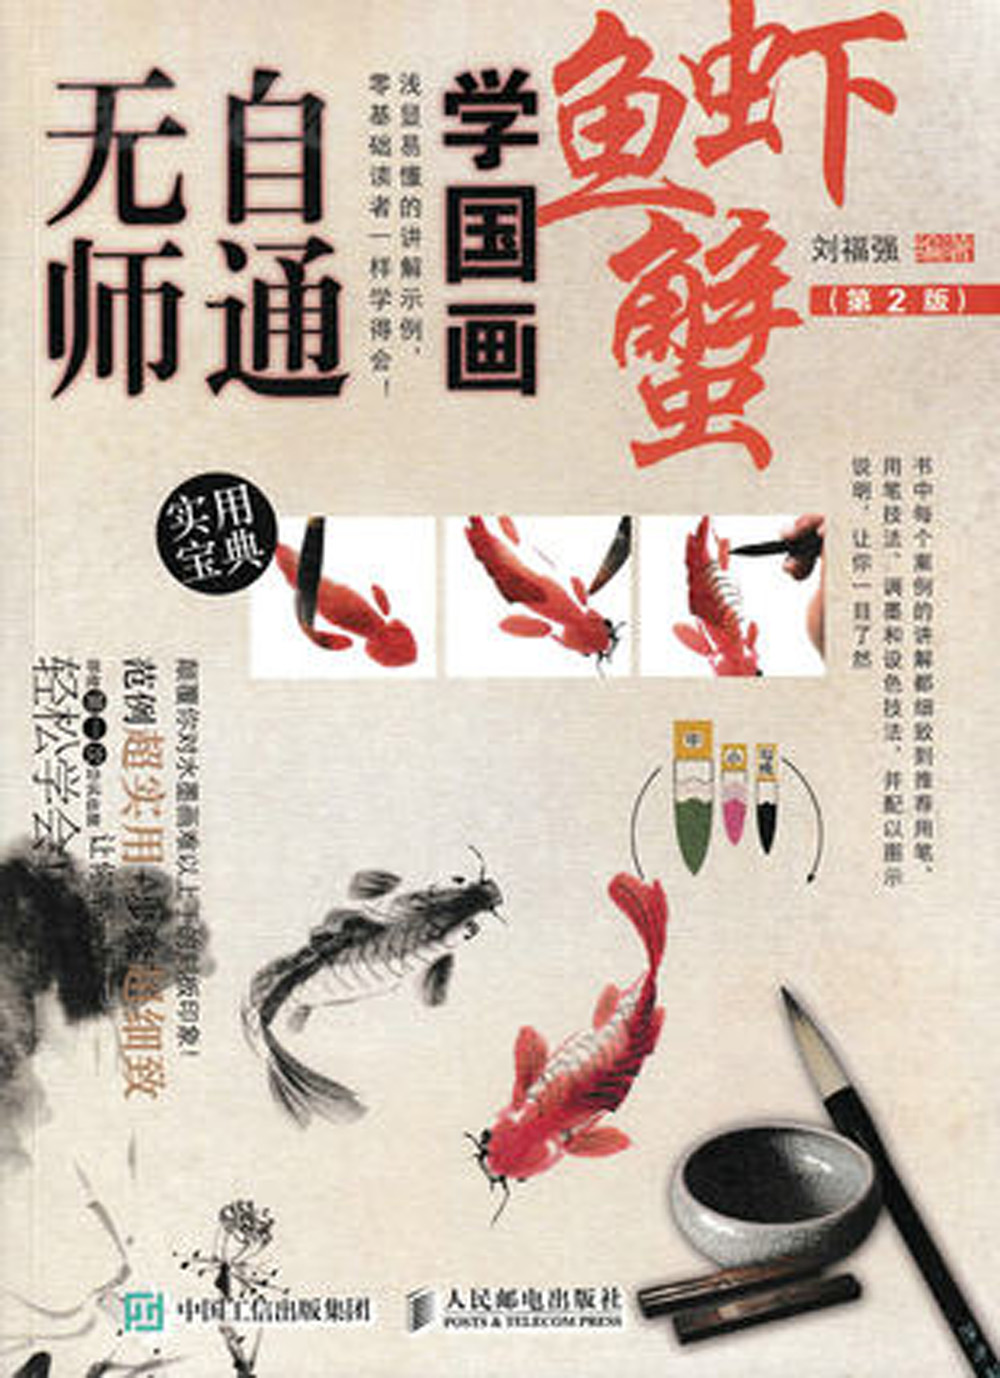 Chinese Brush Ink Art Painting Sumi-e Self-Study Technique Draw Fish And Shrimp Book (Chinese Edition)